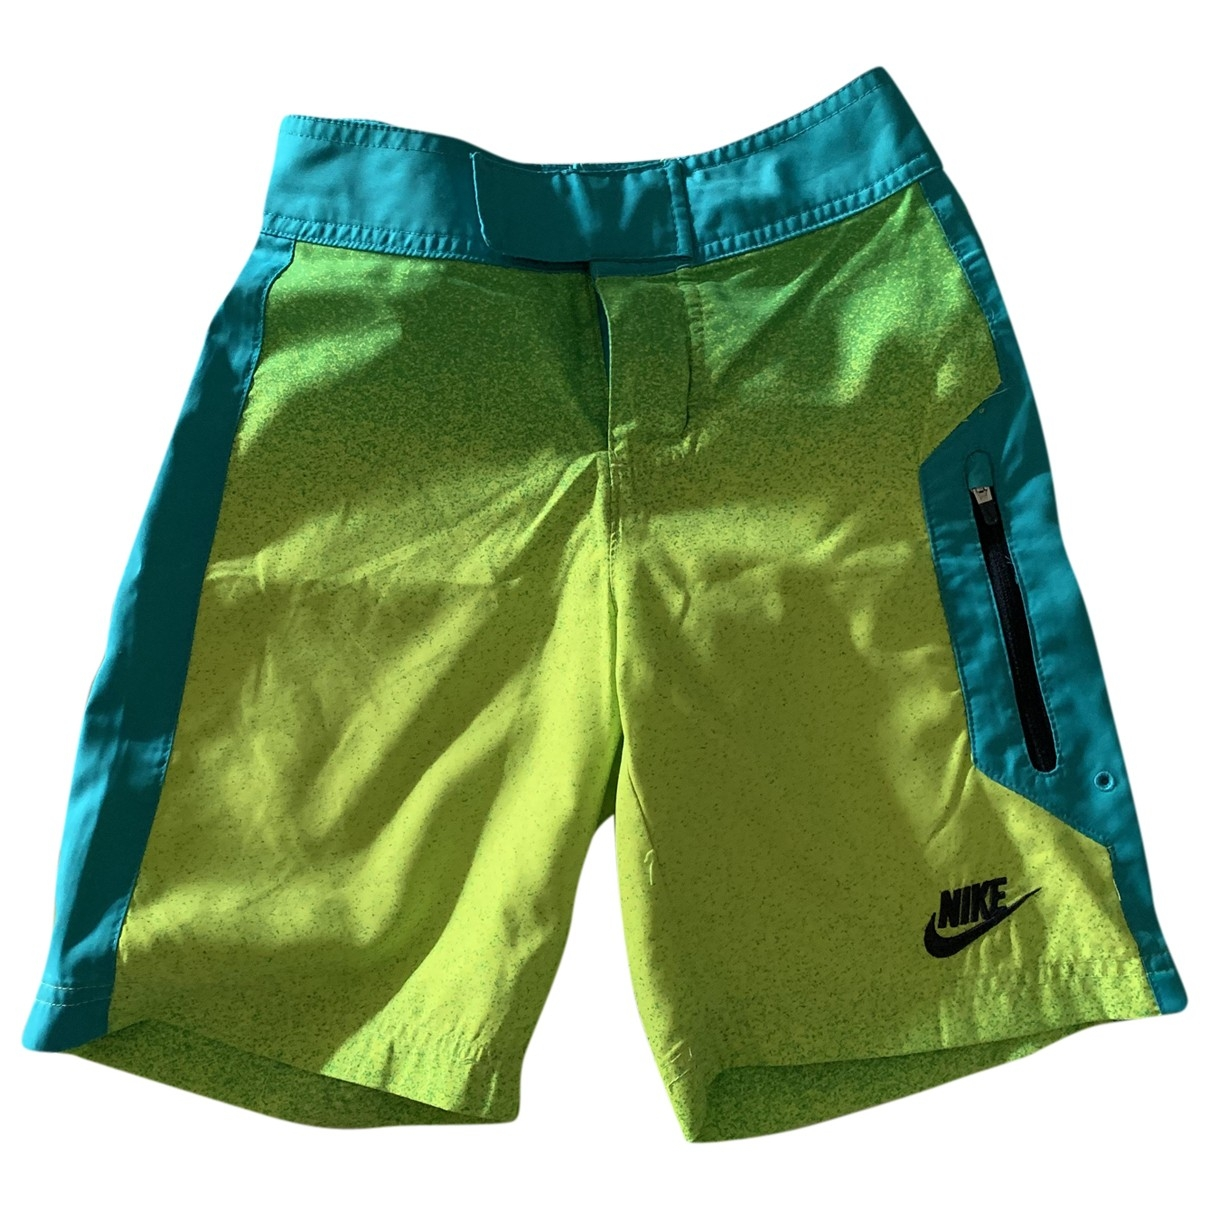 Nike \N Green Shorts for Kids 6 years - until 45 inches UK